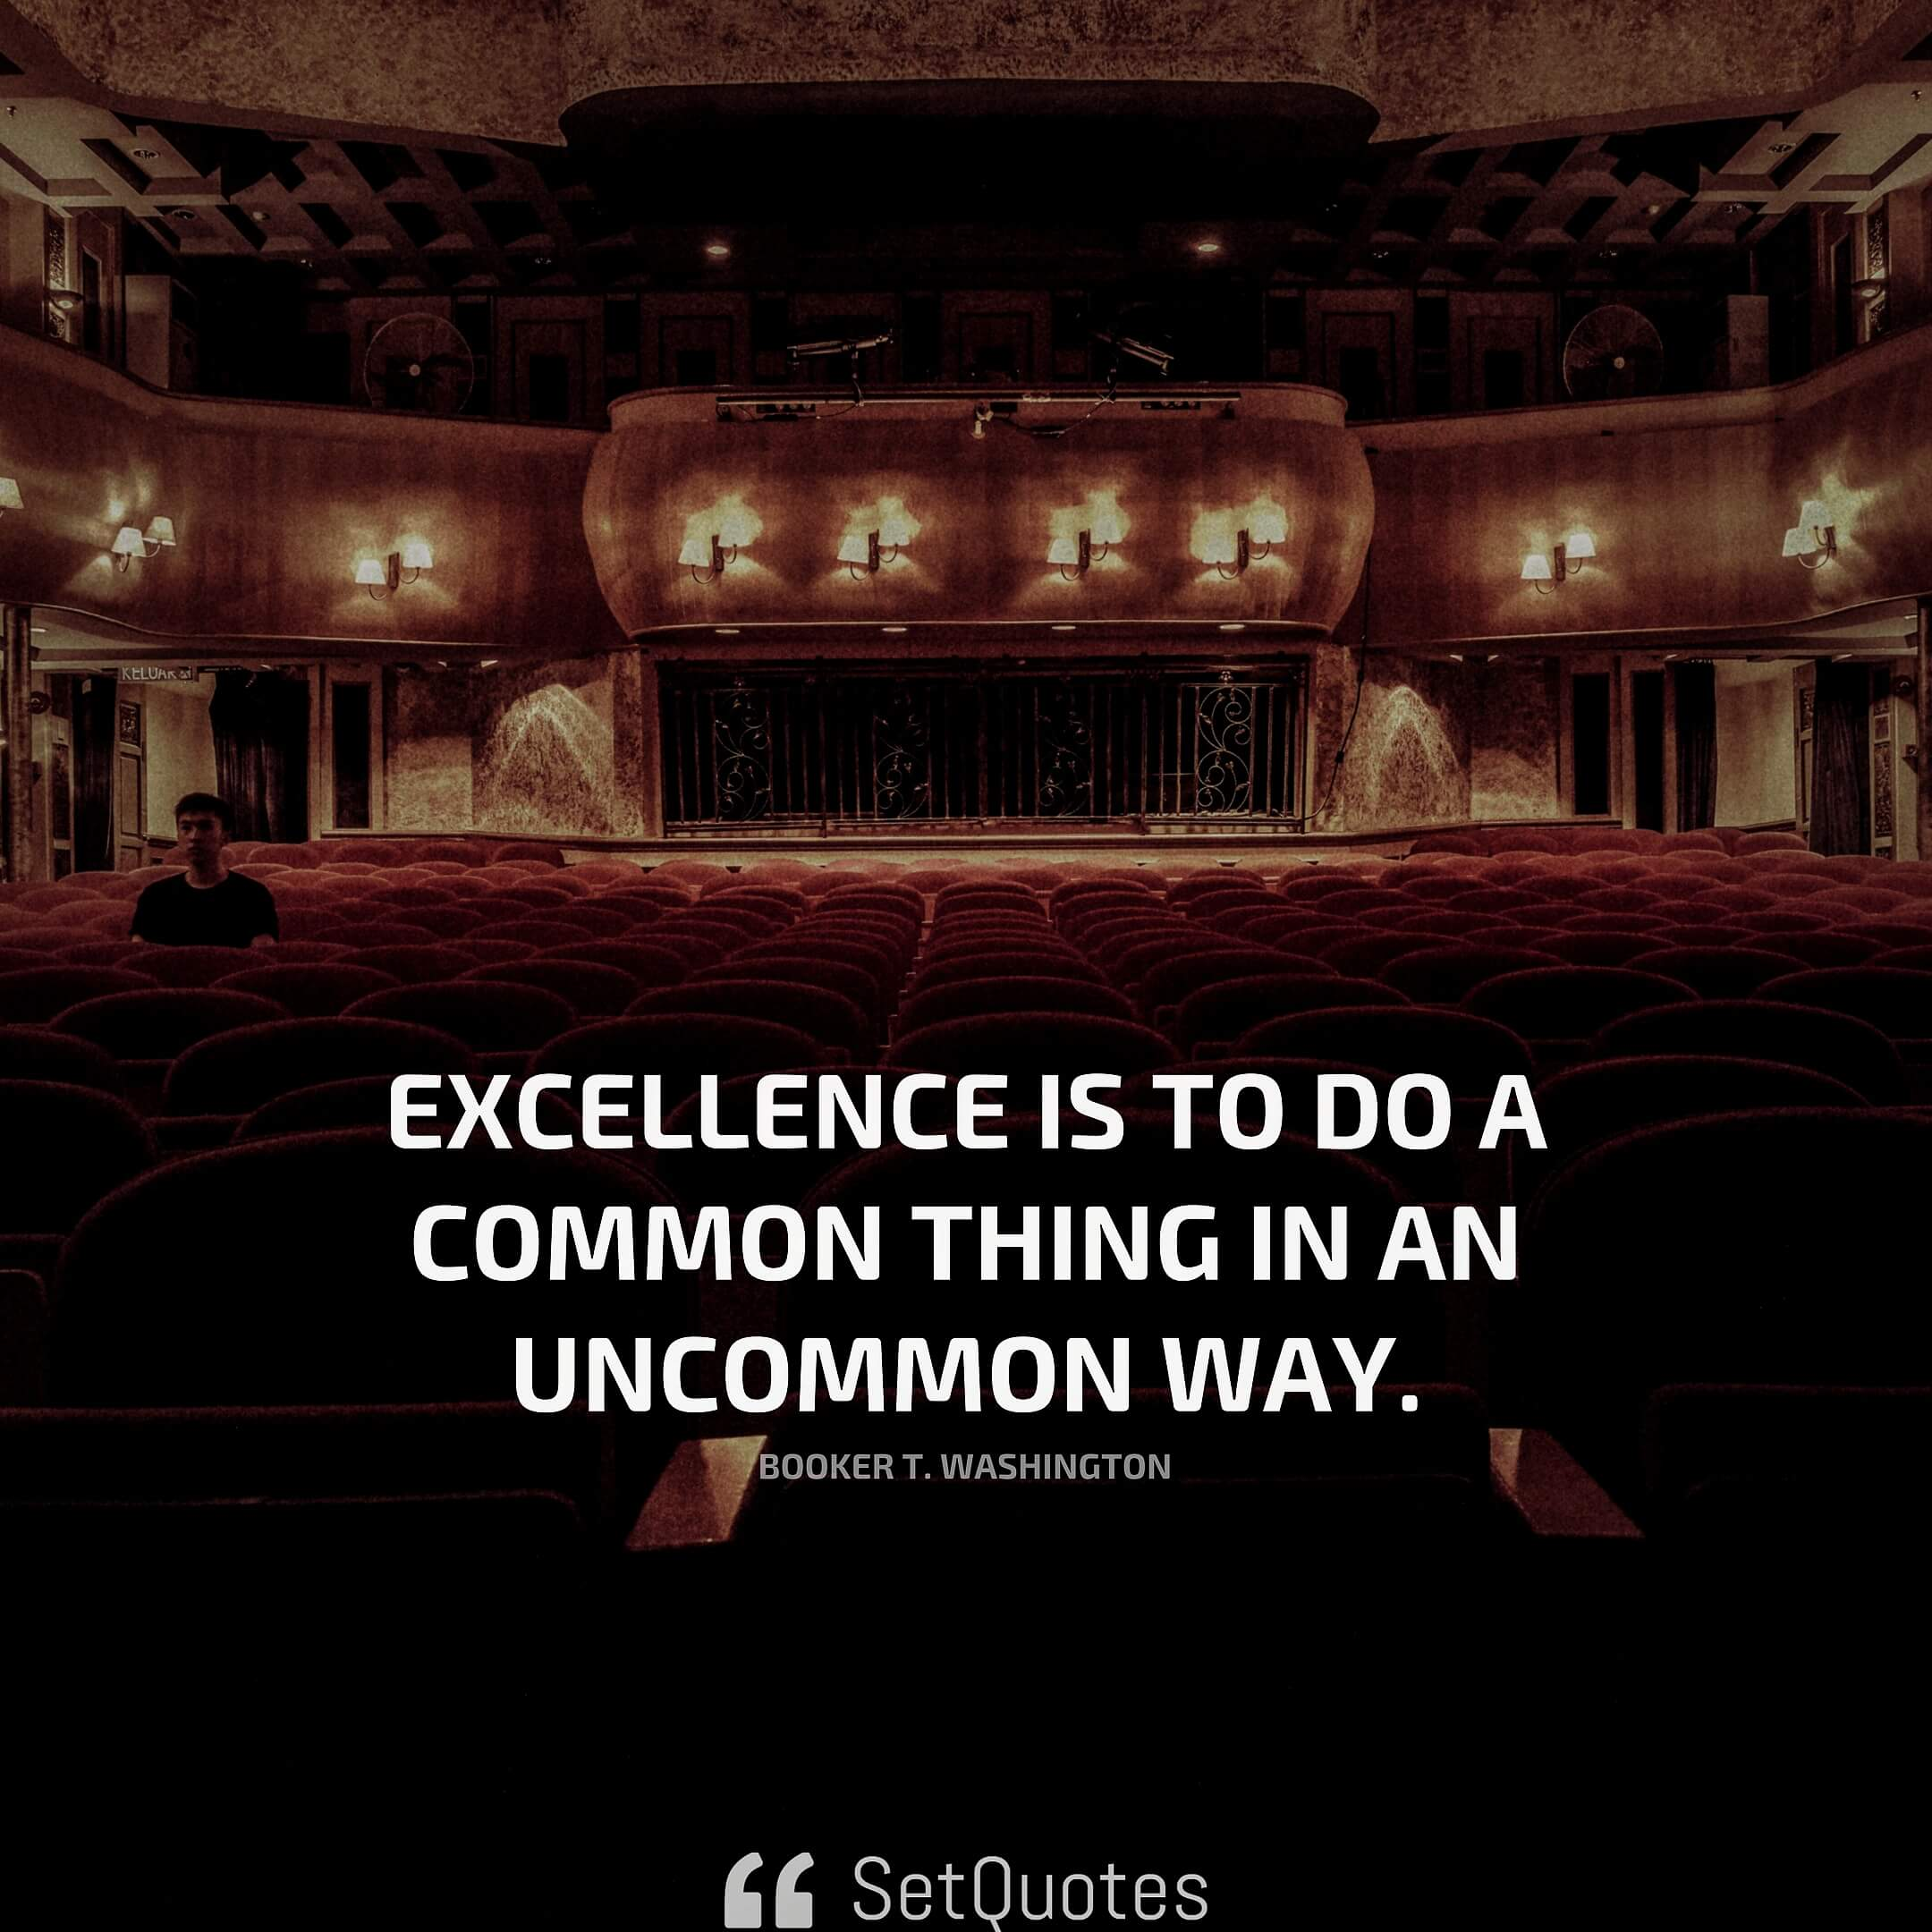 Excellence is to do a common thing in an uncommon way. – Booker T. Washington